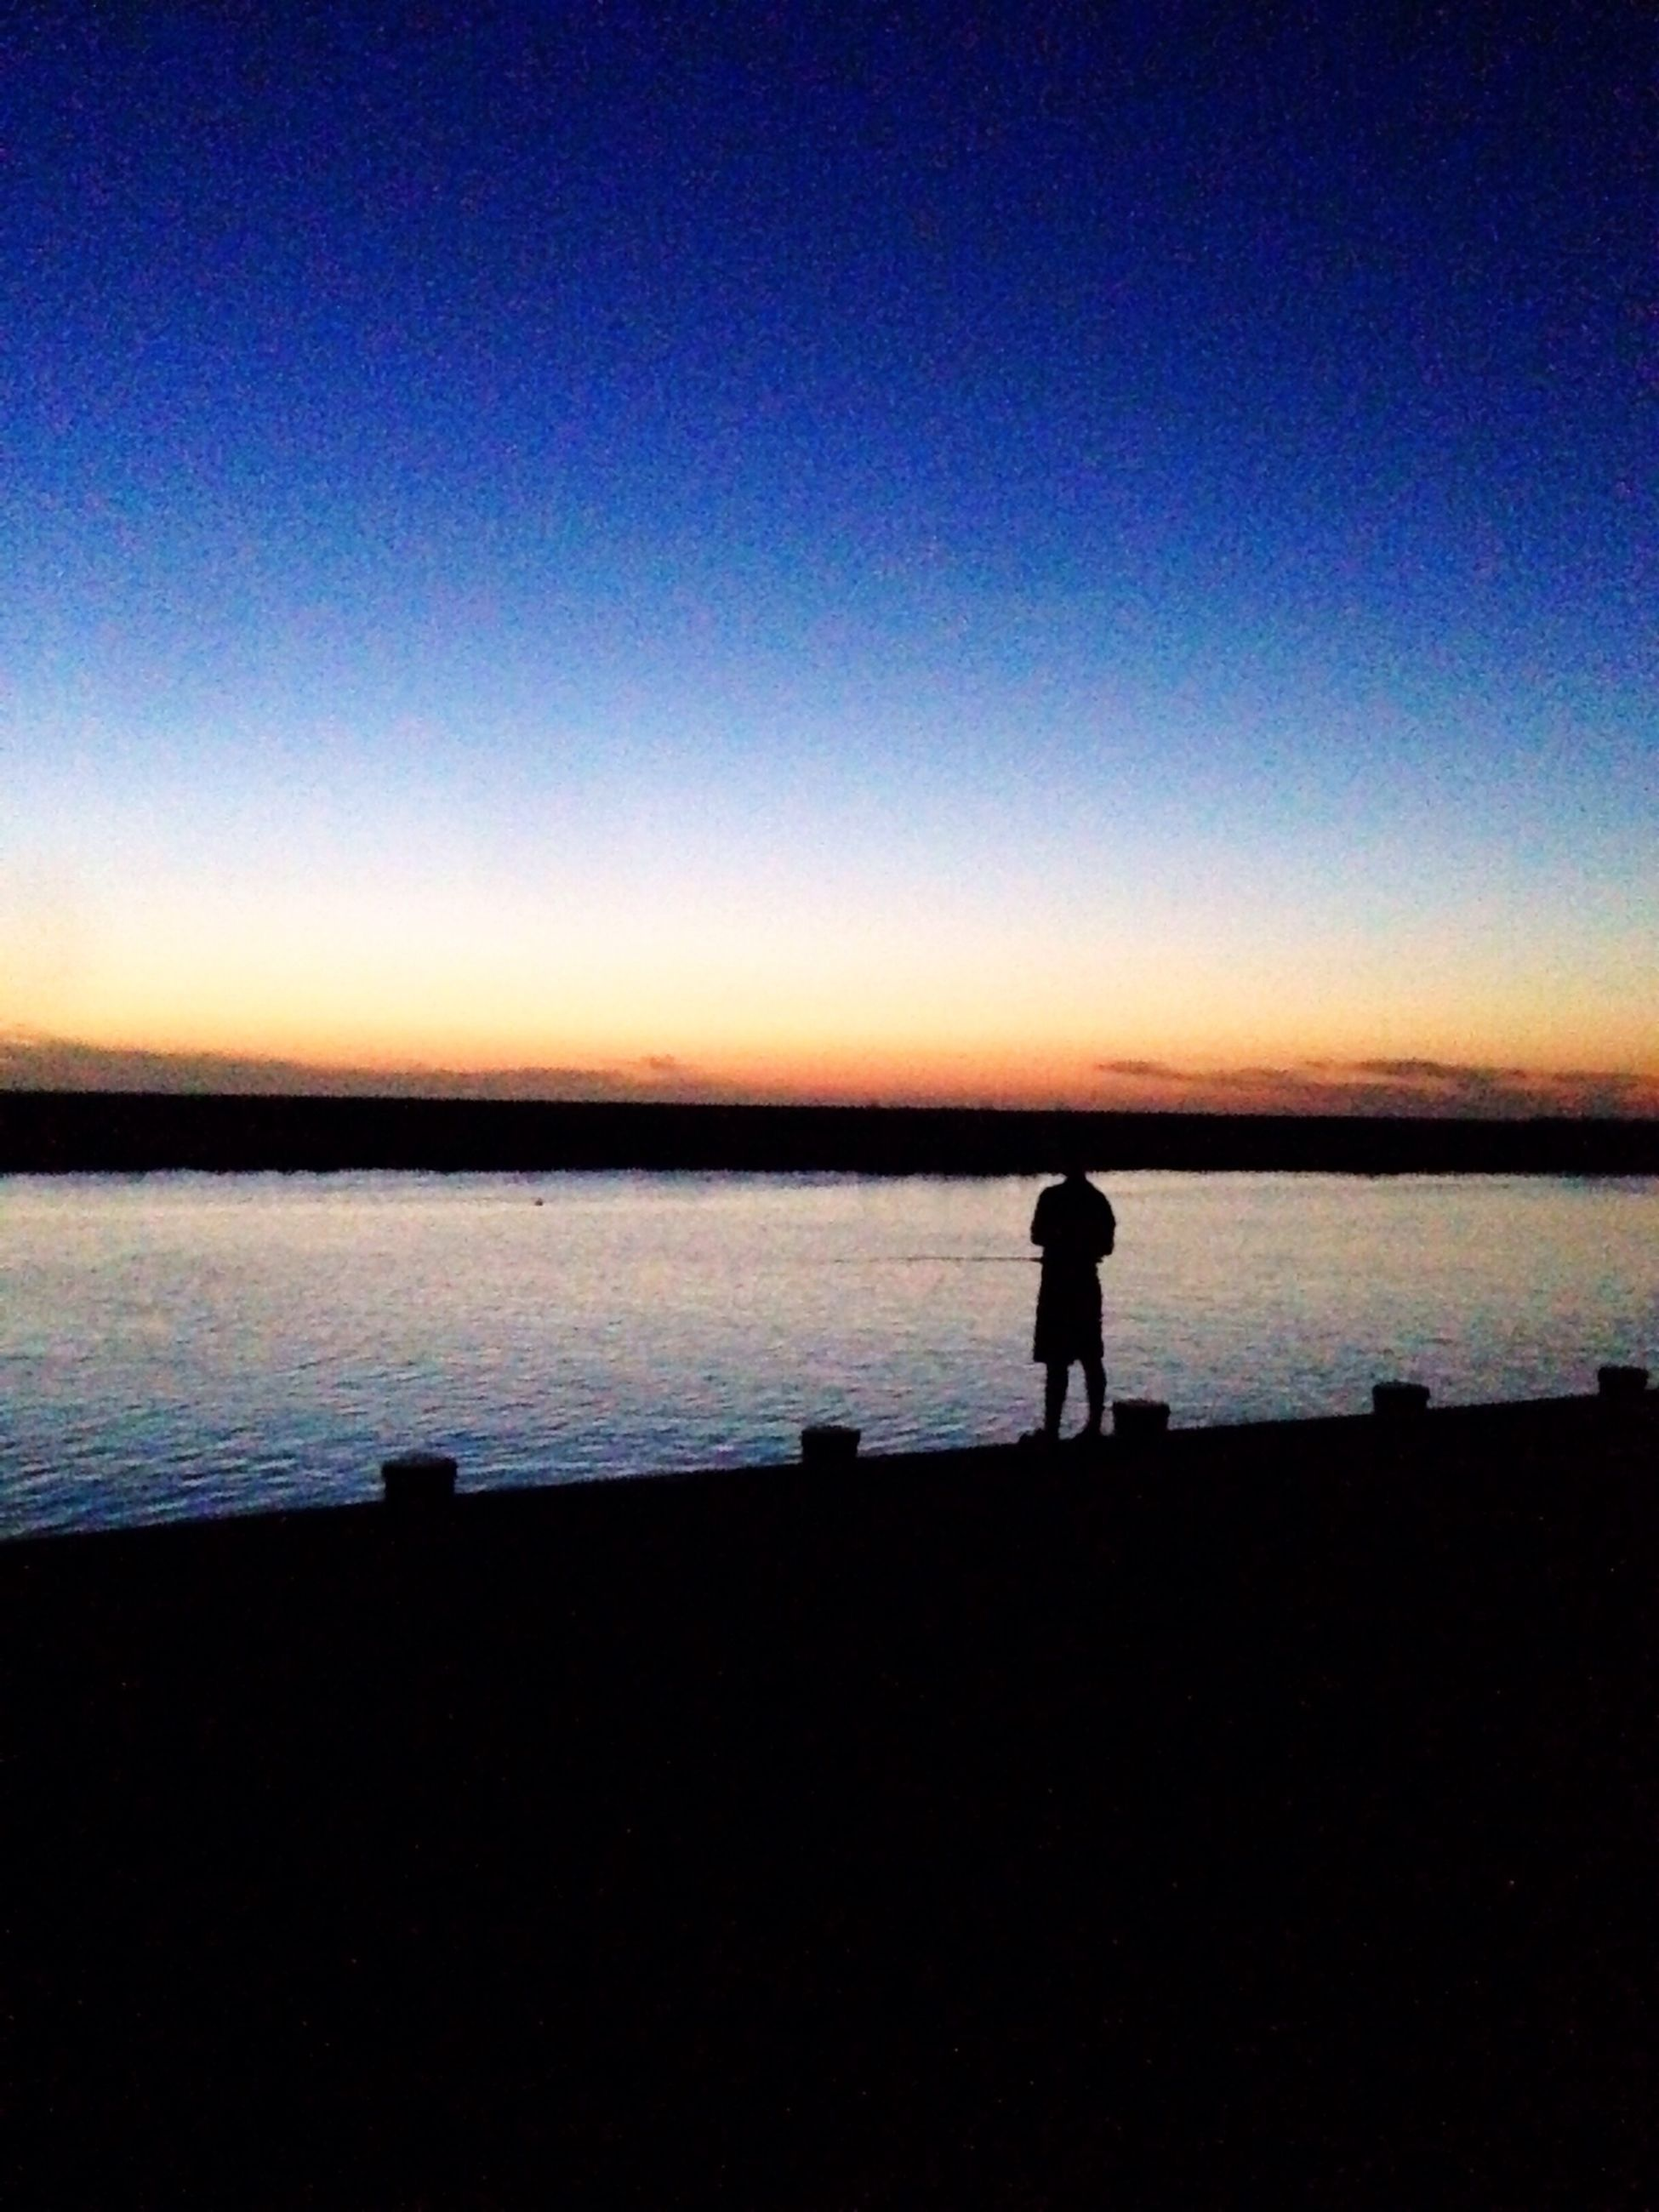 silhouette, water, sunset, scenics, tranquil scene, copy space, tranquility, standing, sea, beauty in nature, clear sky, men, nature, leisure activity, idyllic, dusk, outline, lifestyles, beach